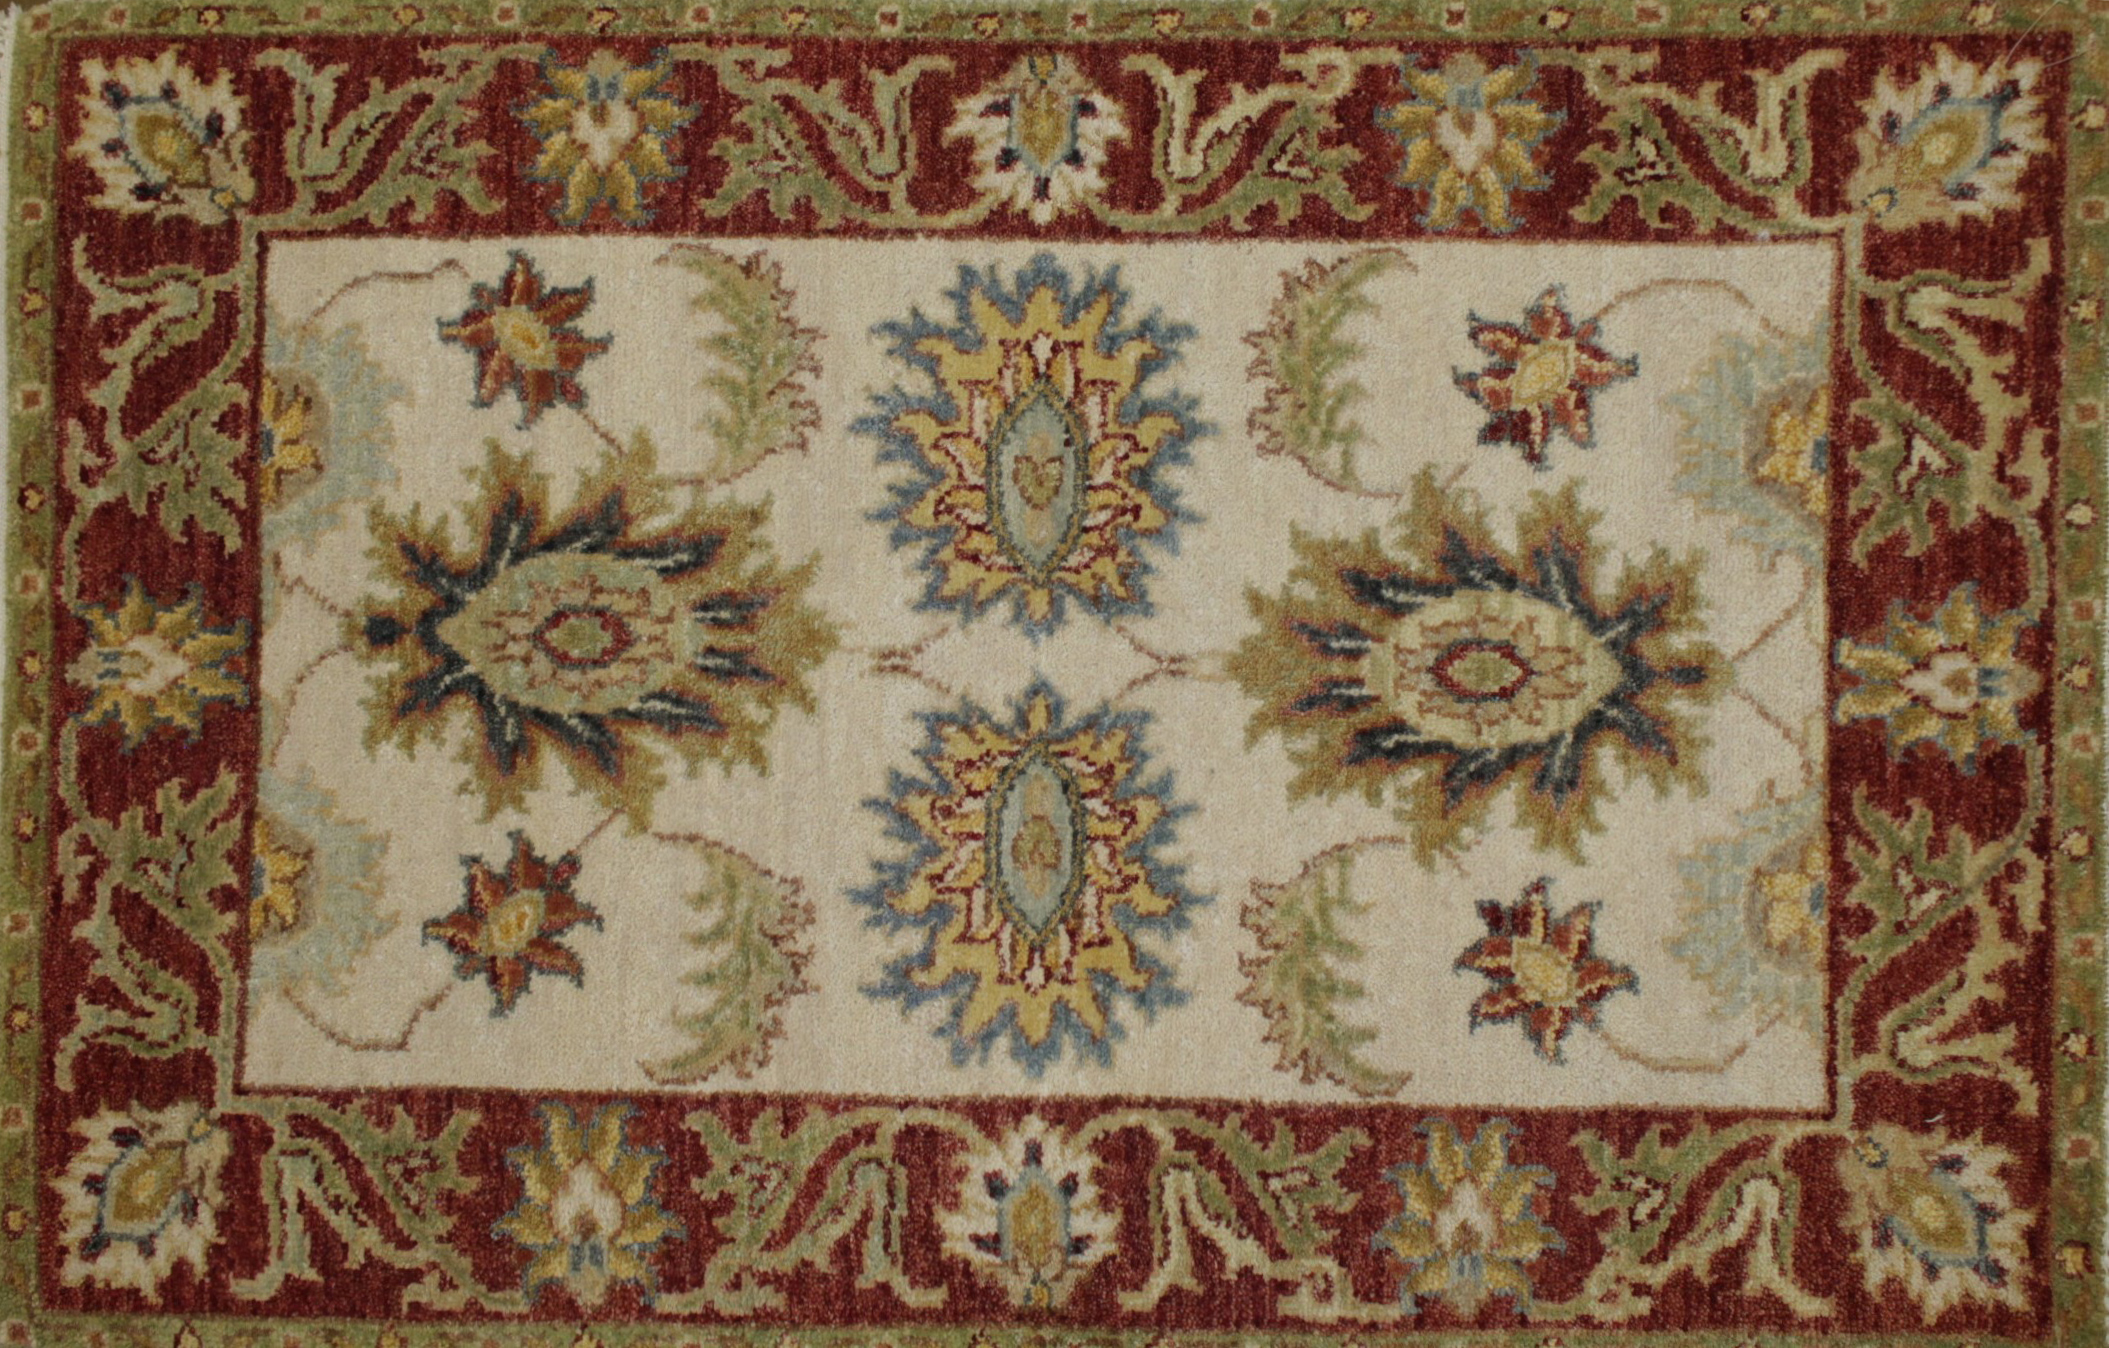 2X3 Traditional Hand Knotted Wool Area Rug - MR022078